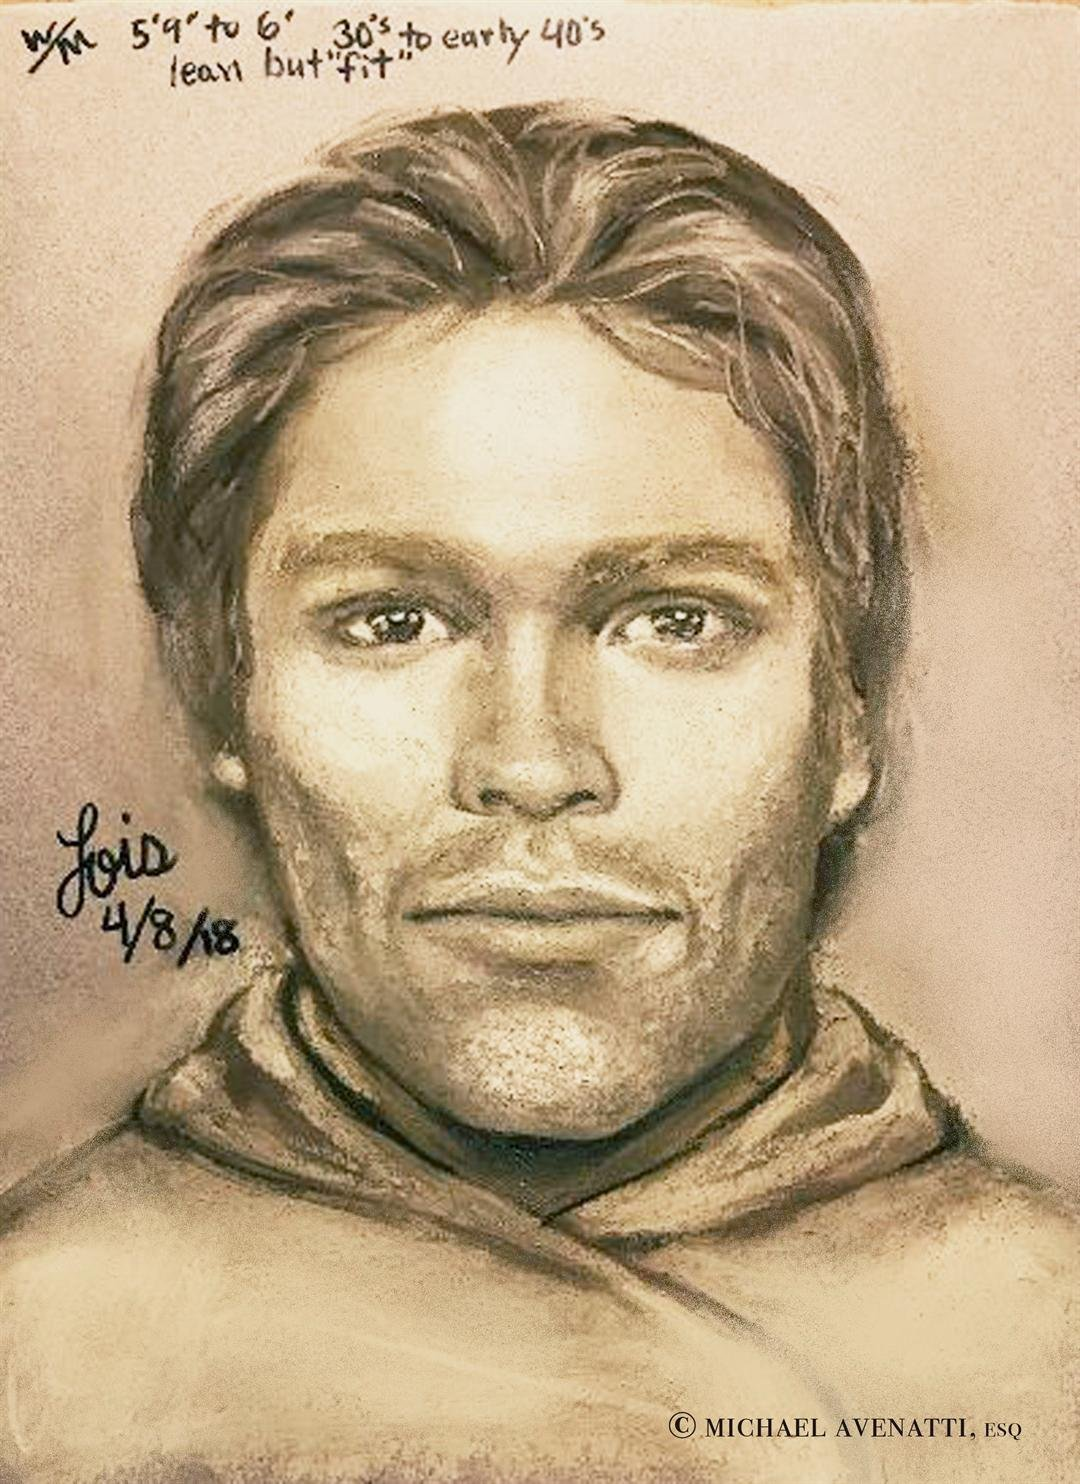 This artist's drawing released by attorney Michael Avenatti, reports to show the man that Stormy Daniels says threatened her in a Las Vegas parking lot in 2011 to remain quiet about her affair with President Donald Trump. (Michael Avenatti via AP)